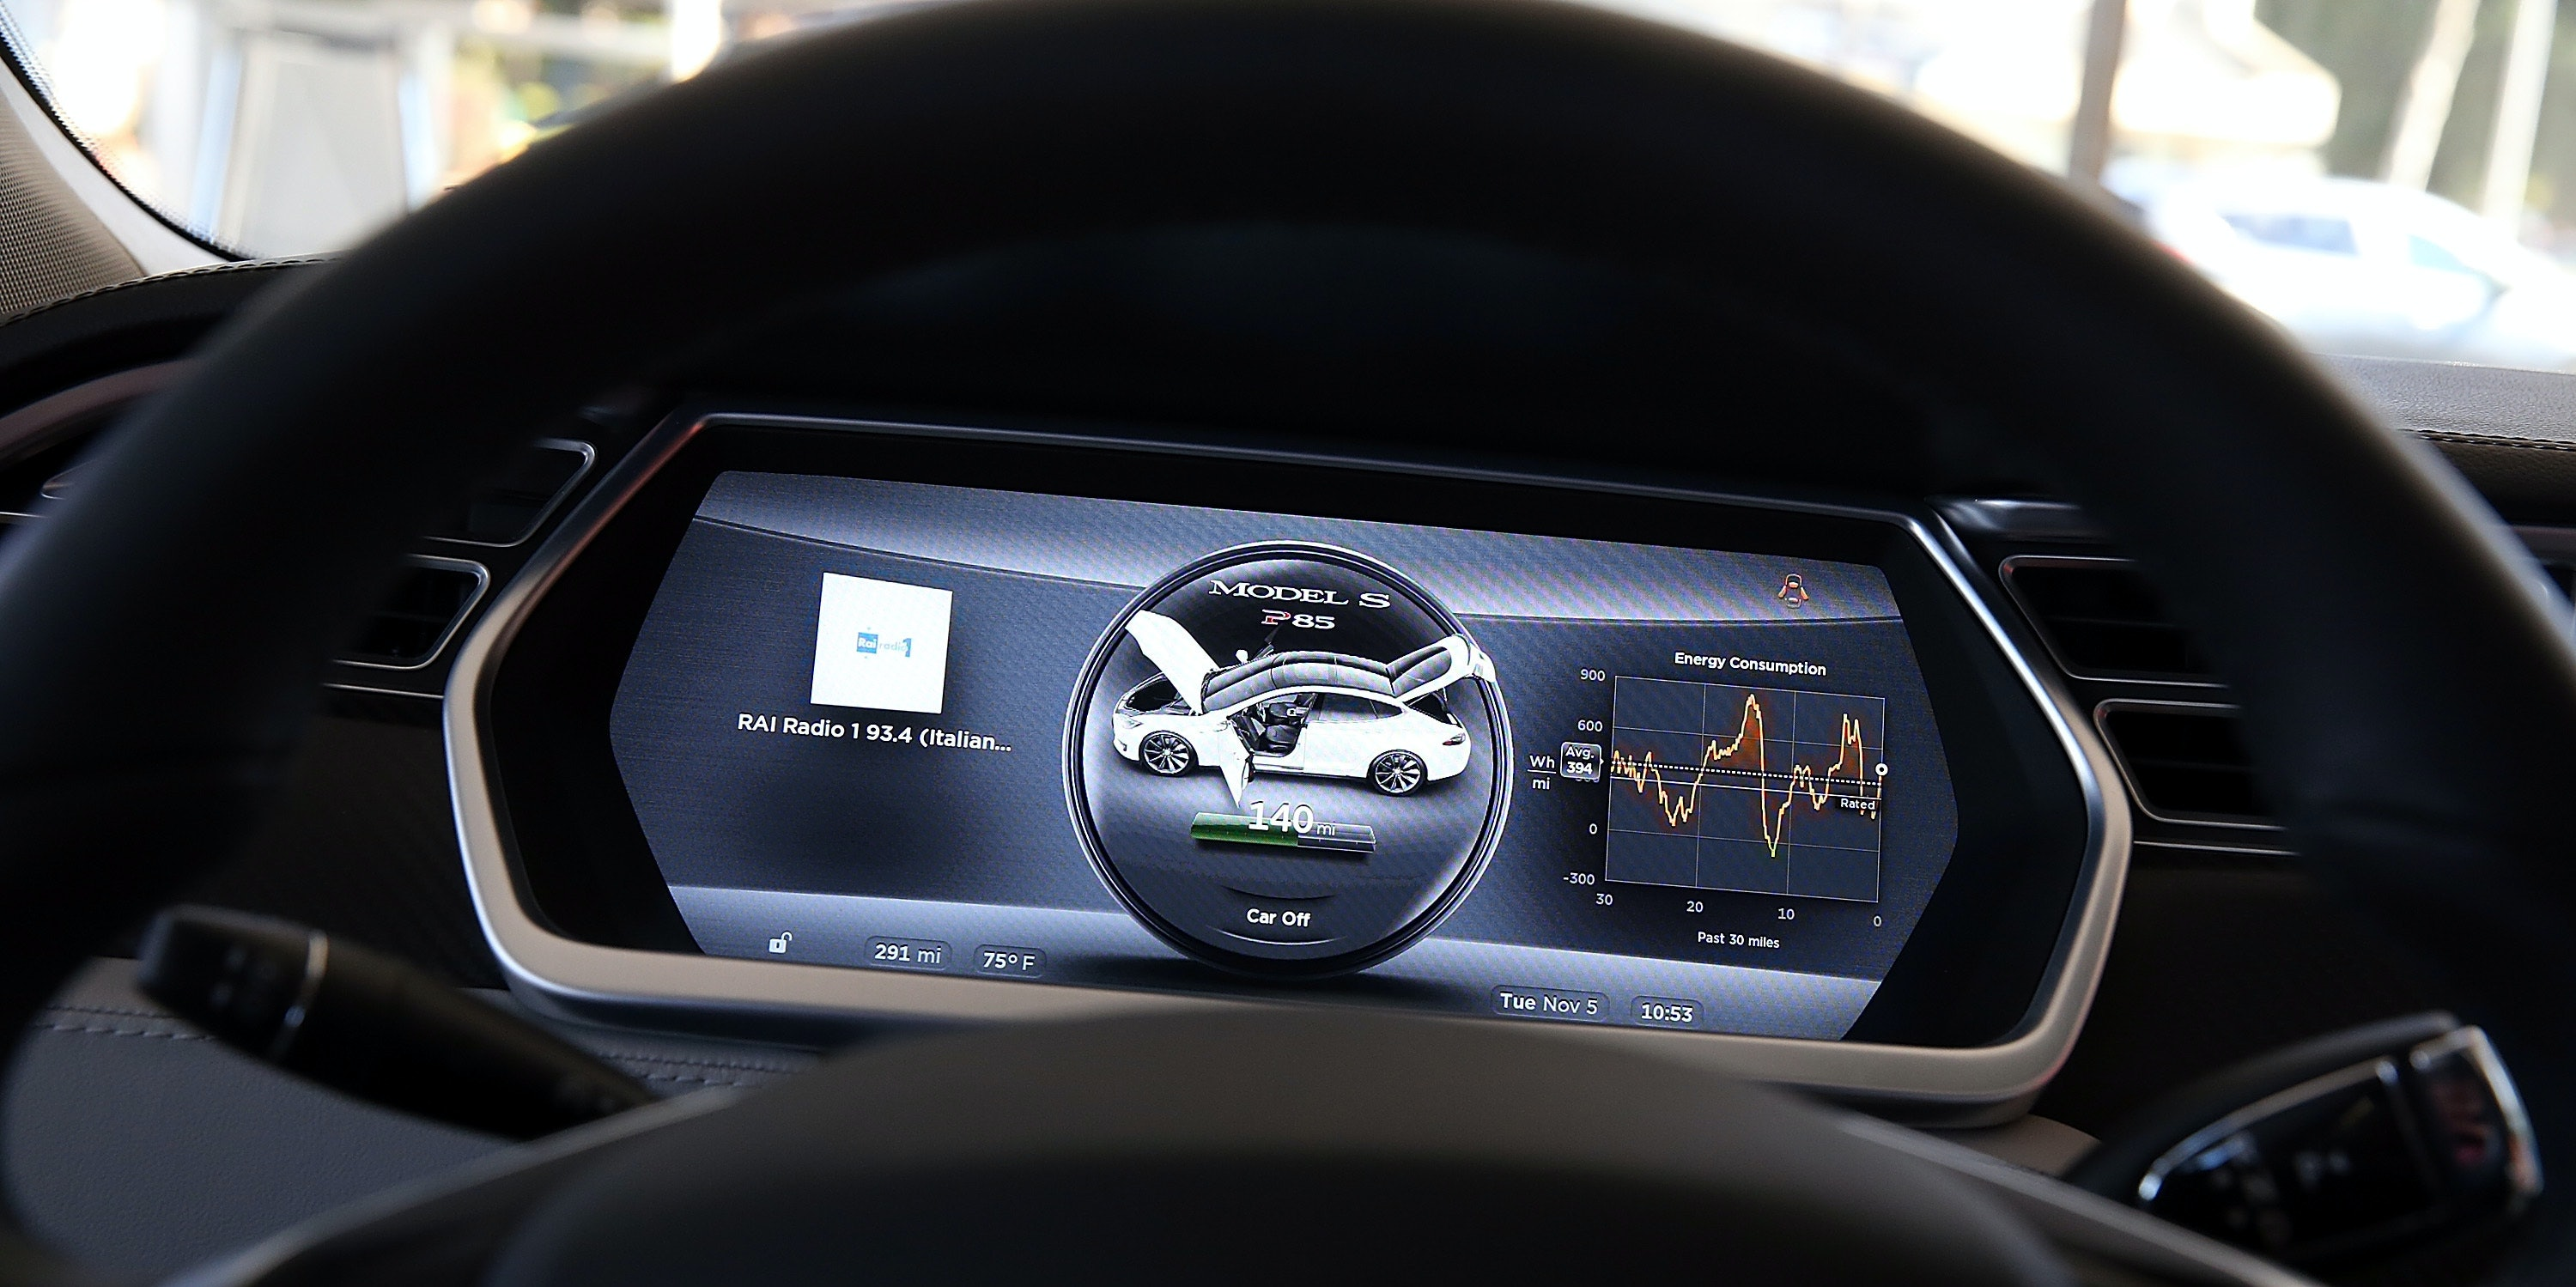 PALO ALTO, CA - NOVEMBER 05:  A view of the dashboard in a new Tesla Model S car at a Tesla showroom on November 5, 2013 in Palo Alto, California. Tesla will report third quarter earnings today after the closing bell.  (Photo by Justin Sullivan/Getty Images)